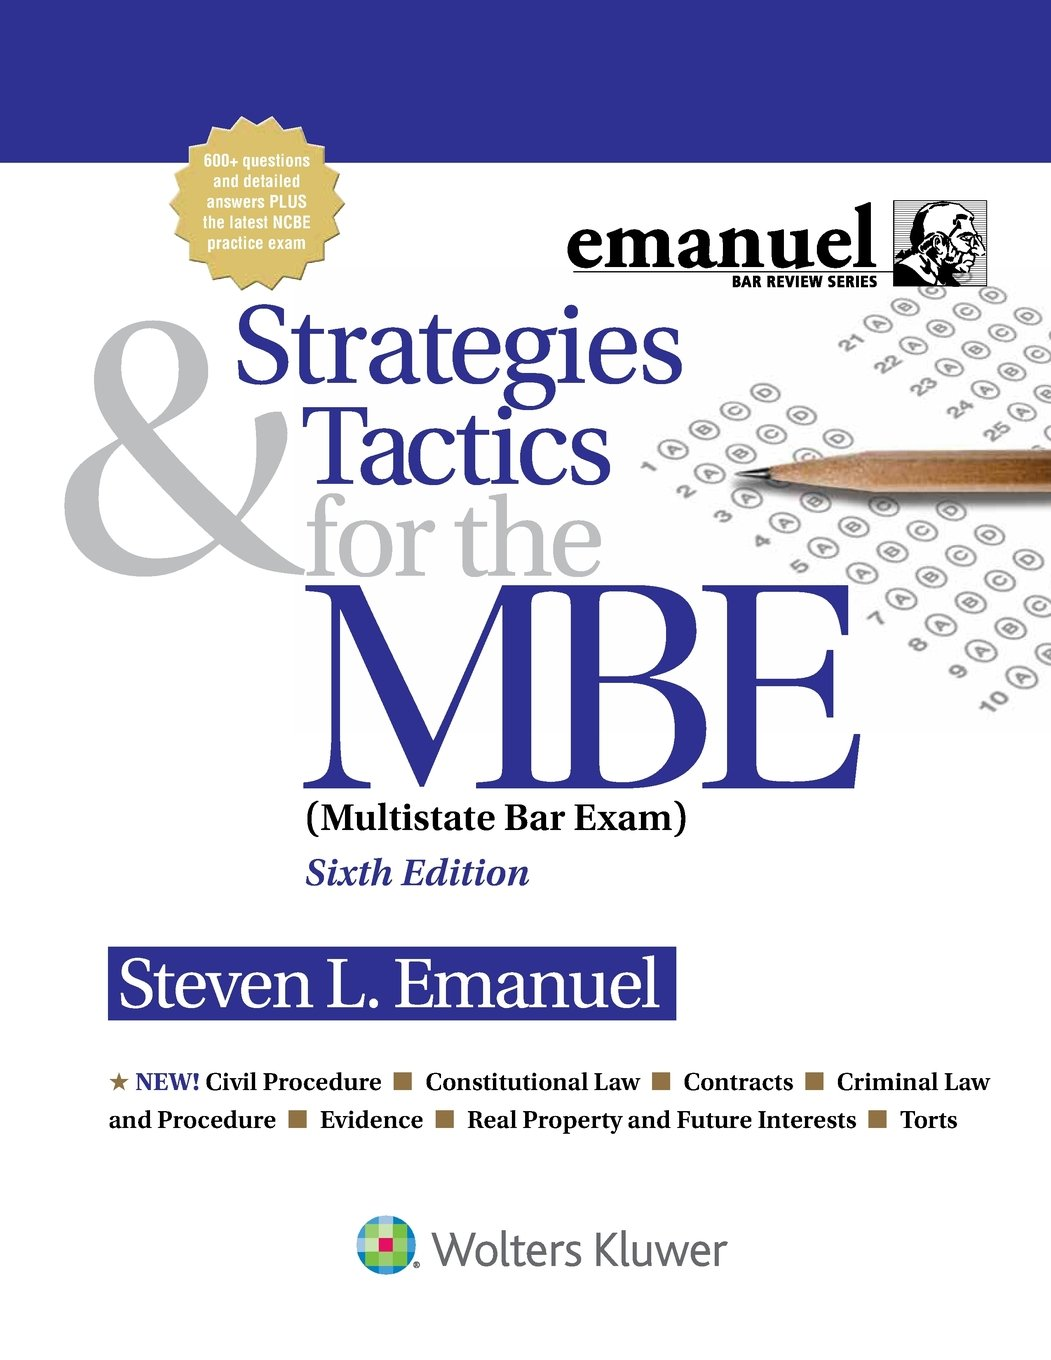 Strategies & Tactics for the MBE (Emanuel Bar Review) by Wolters Kluwer